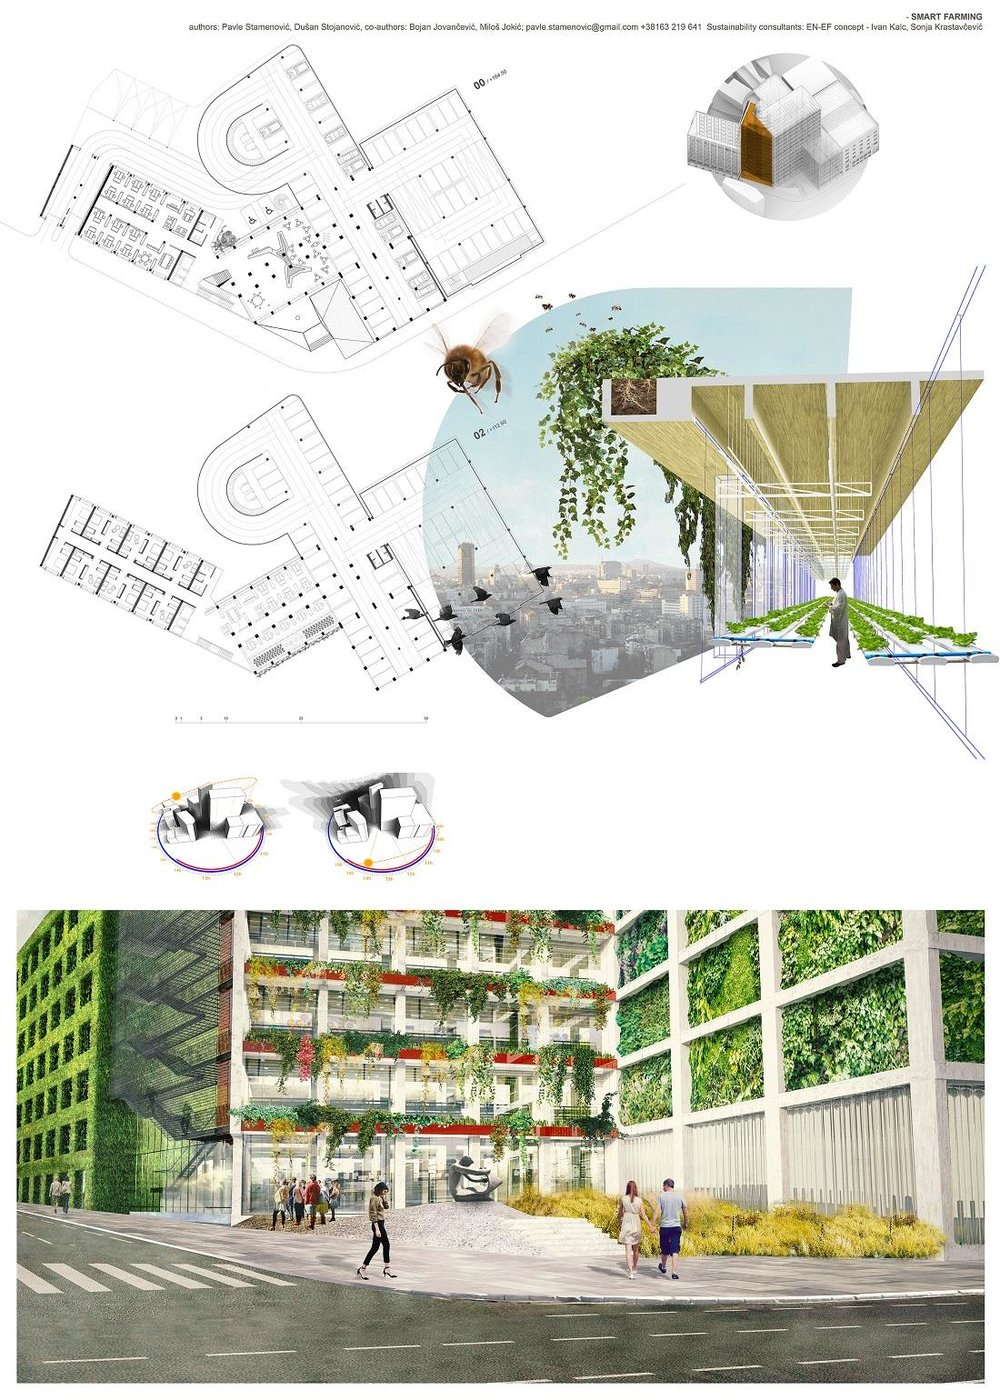 5th-finalist-architectural-competition.jpg